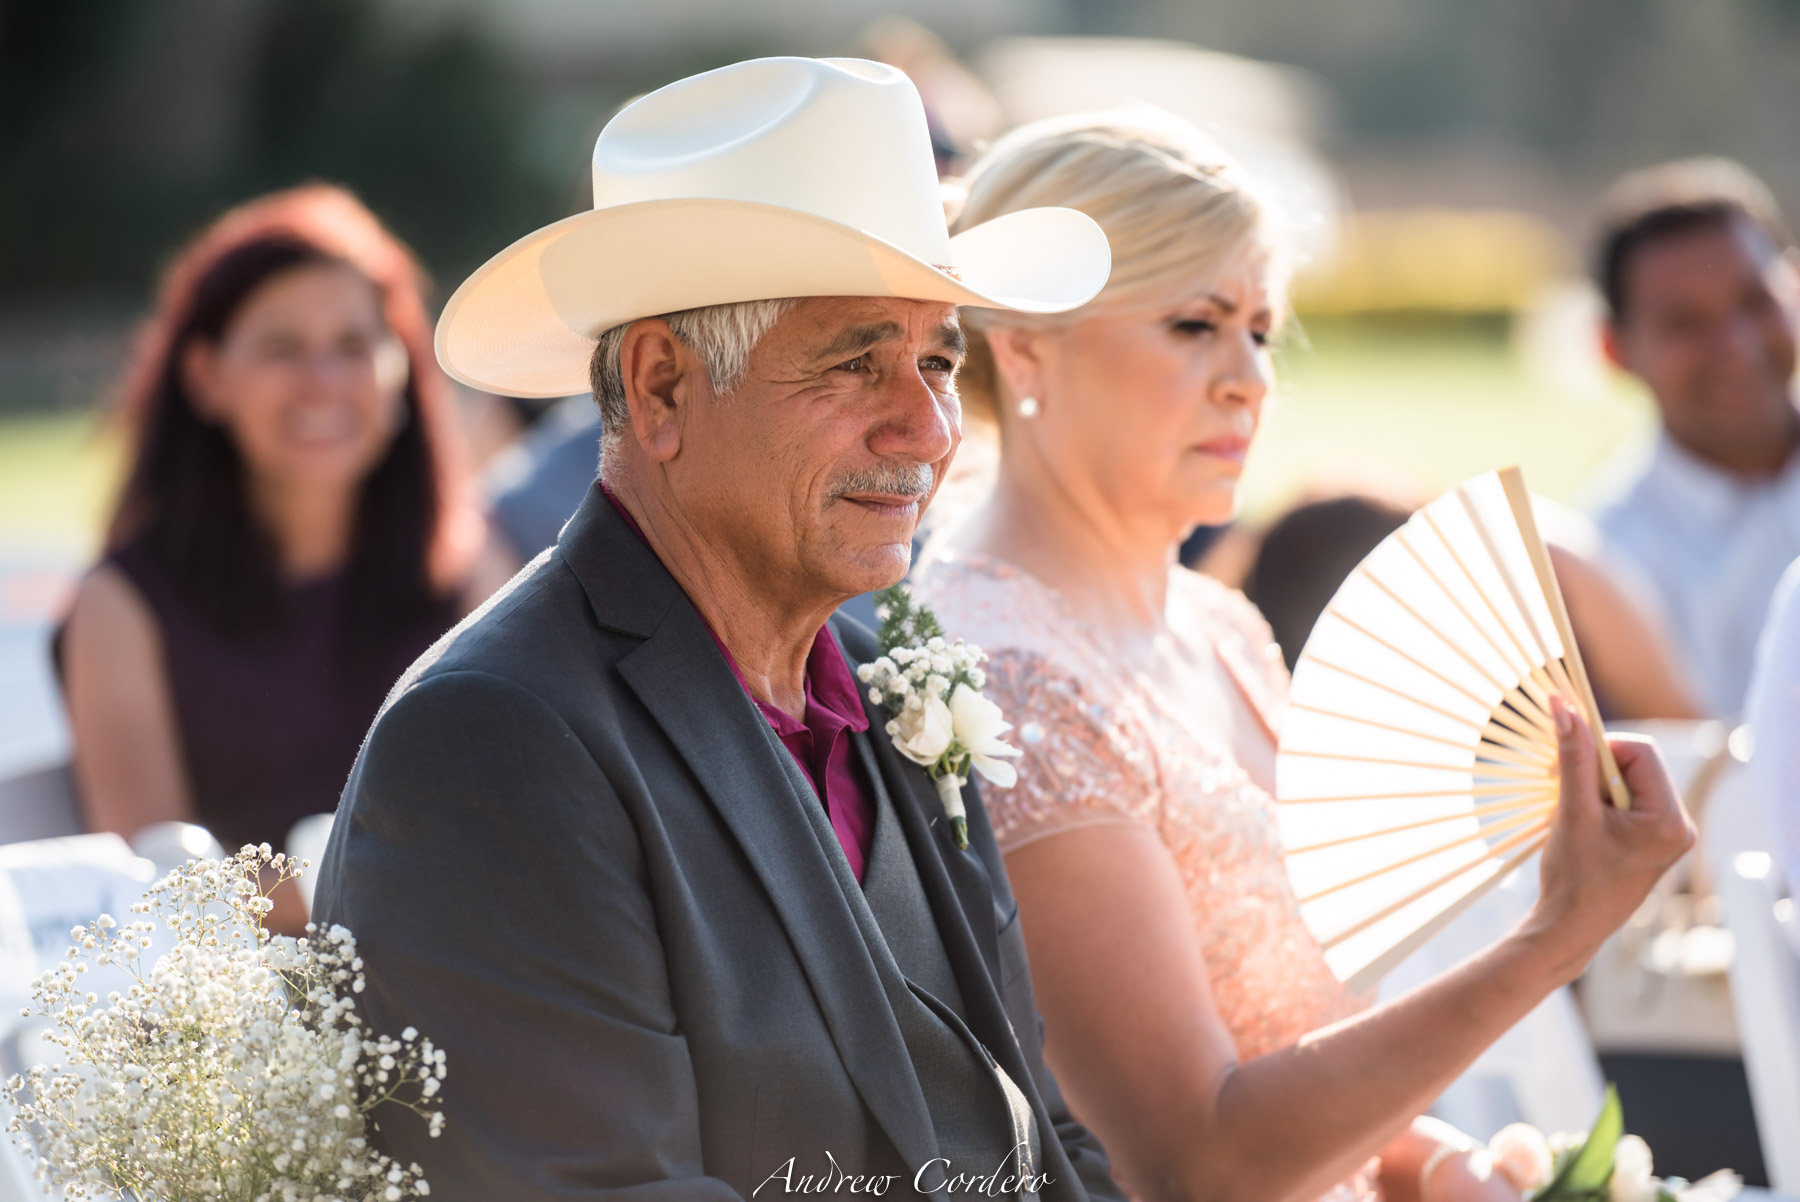 canyon-crest-country-club-riverside-wedding-jose-and-espie-4540.JPG